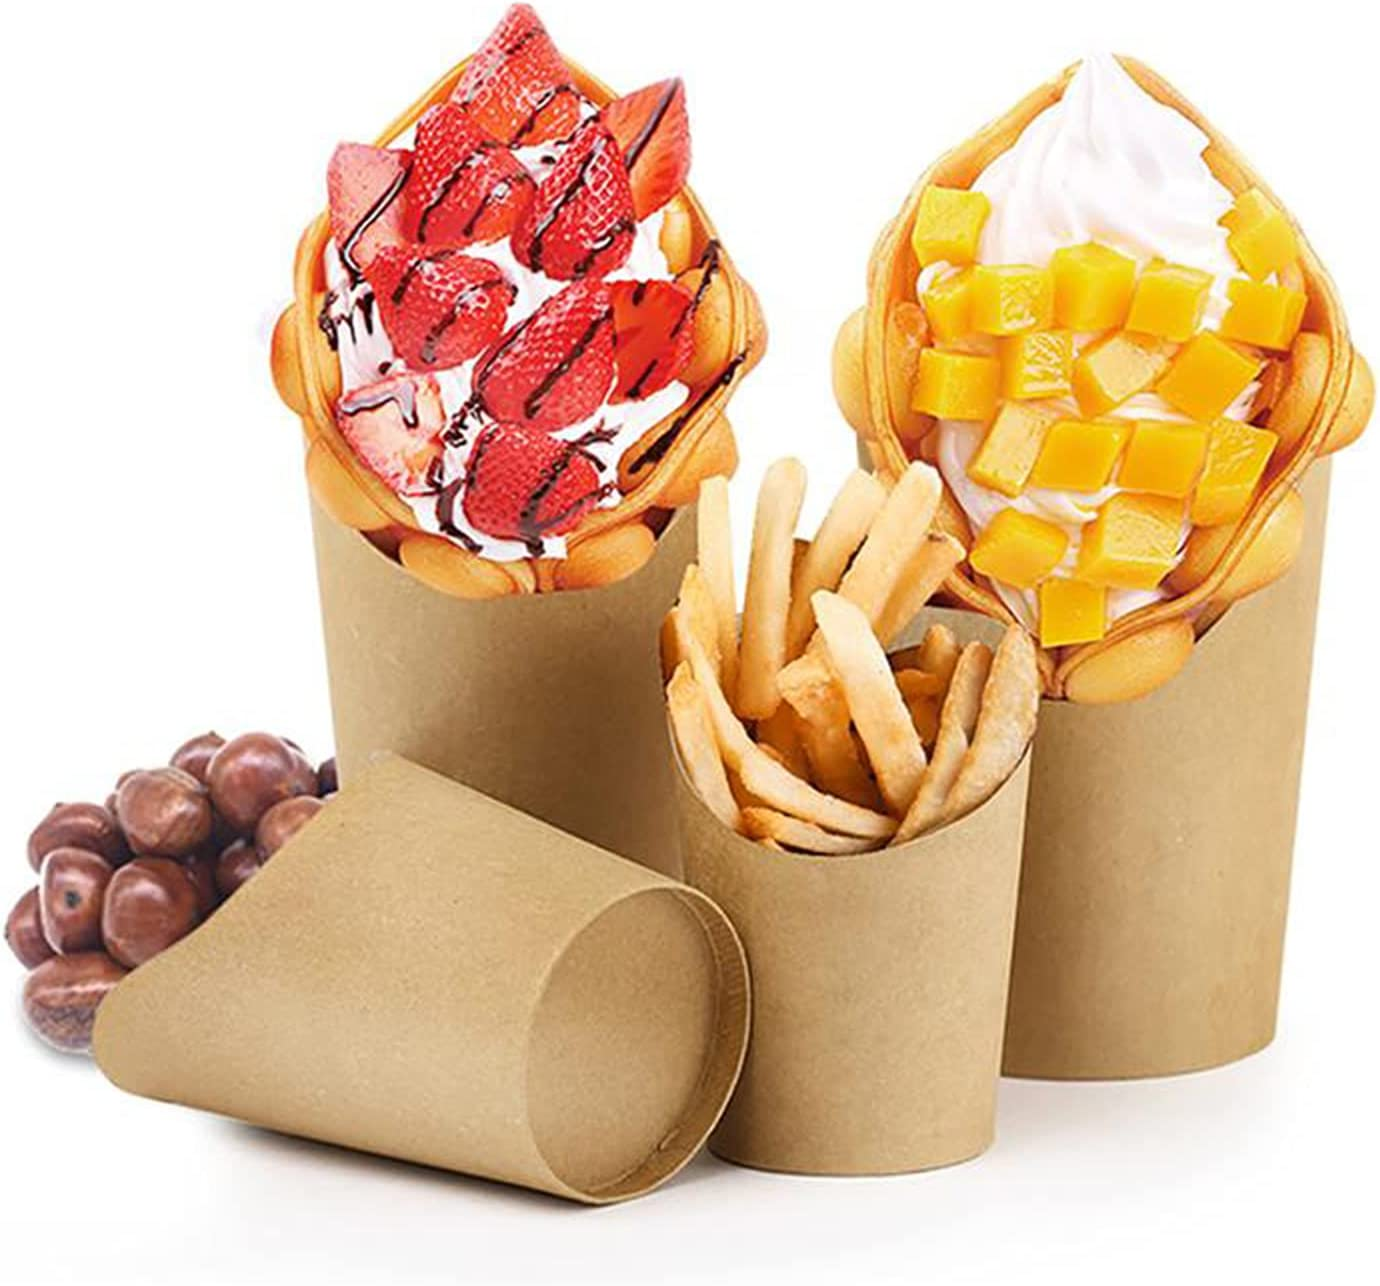 DIMUKEASAOL 14Oz French Fries Cup Sale SALE% OFF We OFFer at cheap prices Holder Fry Disposable